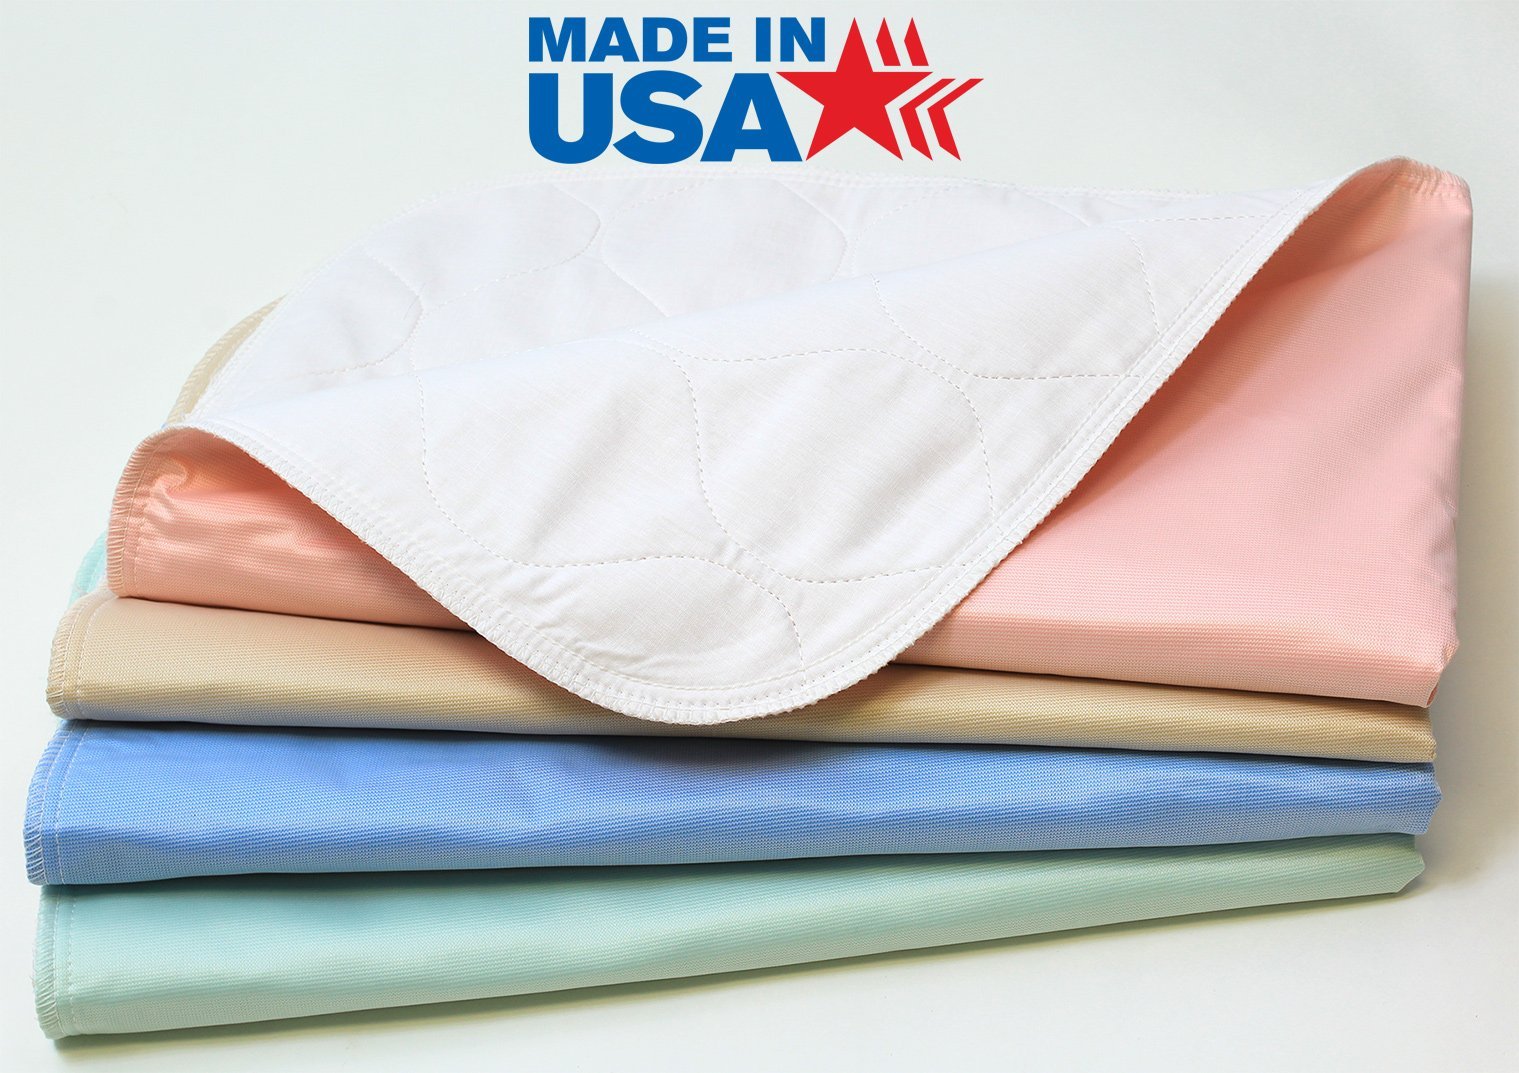 Washable Bed Pads / High Quality Waterproof Incontinence Underpad - 24x36 - 25 Pack - Reusable Wee Wee Pads